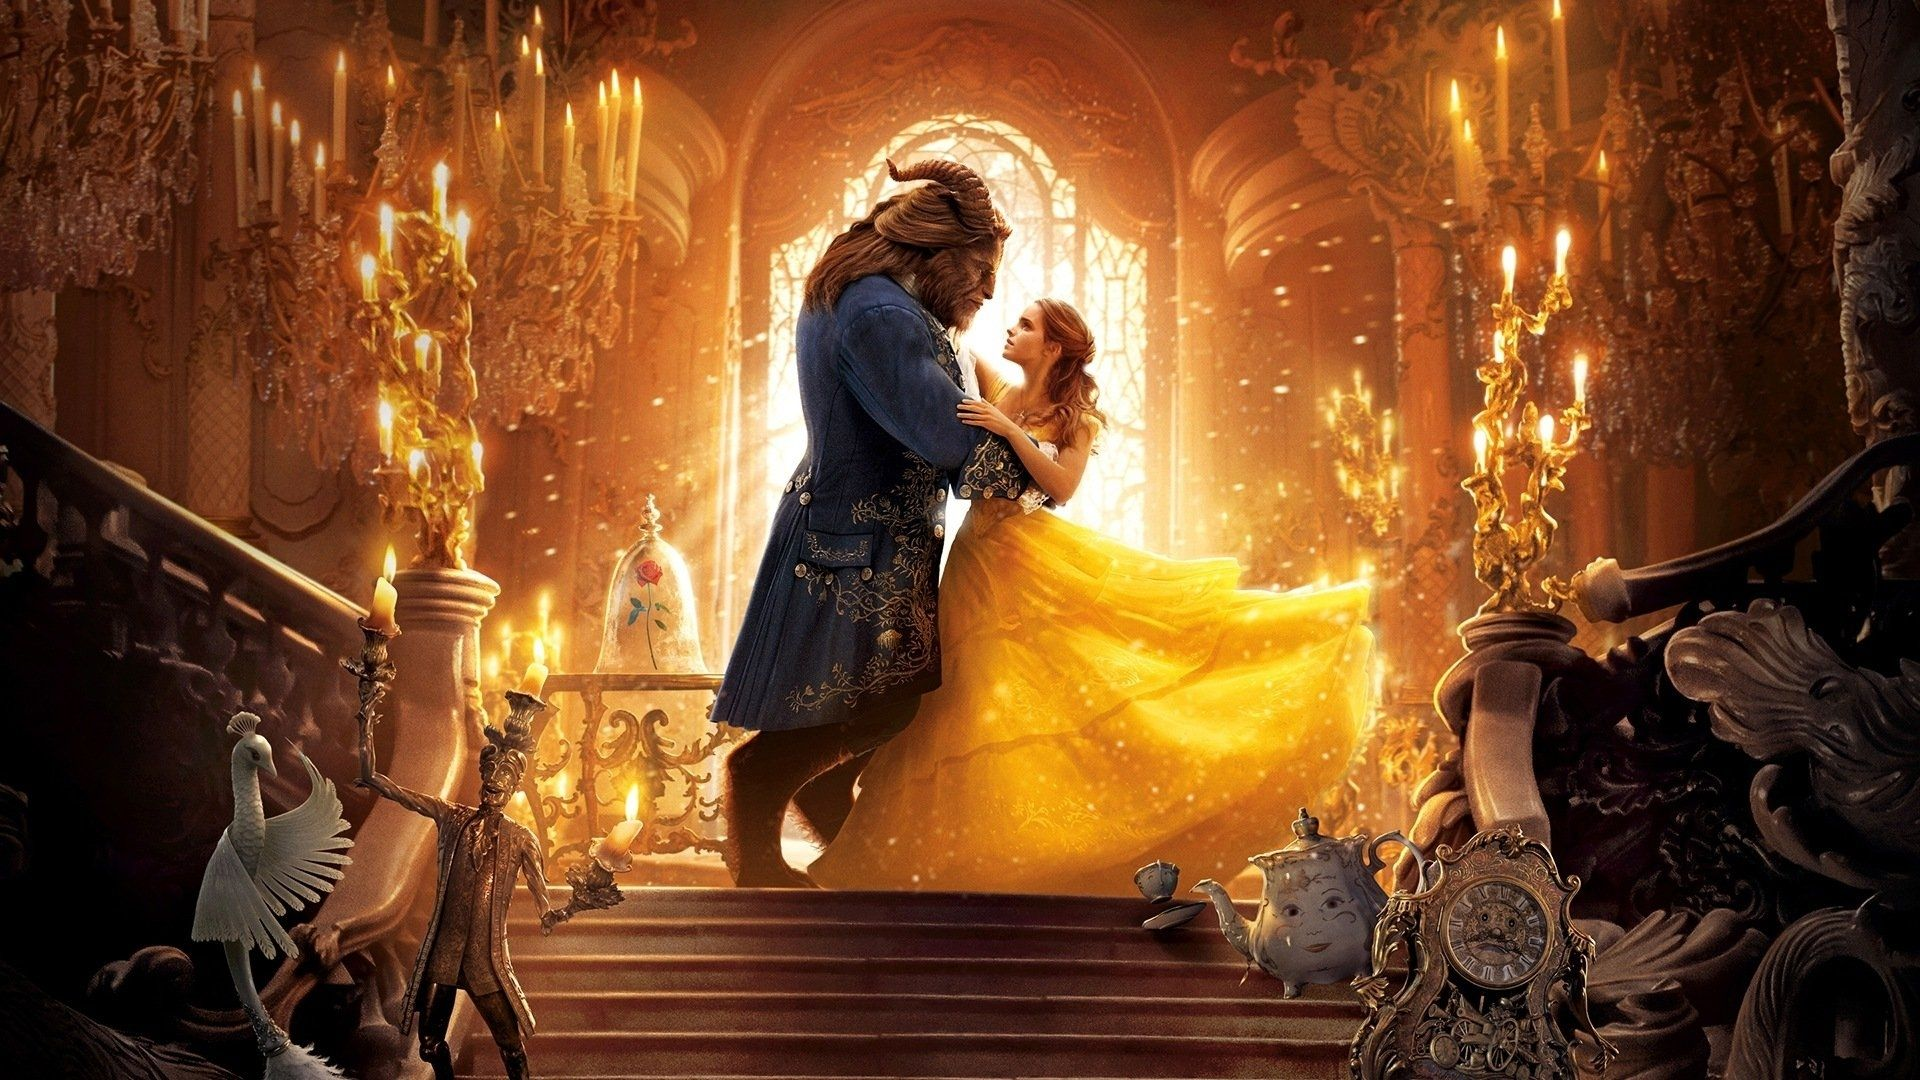 10 Most Popular Beauty And The Beast Desktop Wallpaper Full Hd 1920 1080 For Pc Deskt Beauty And The Beast Movie The Beast Movie Beauty And The Beast Wallpaper